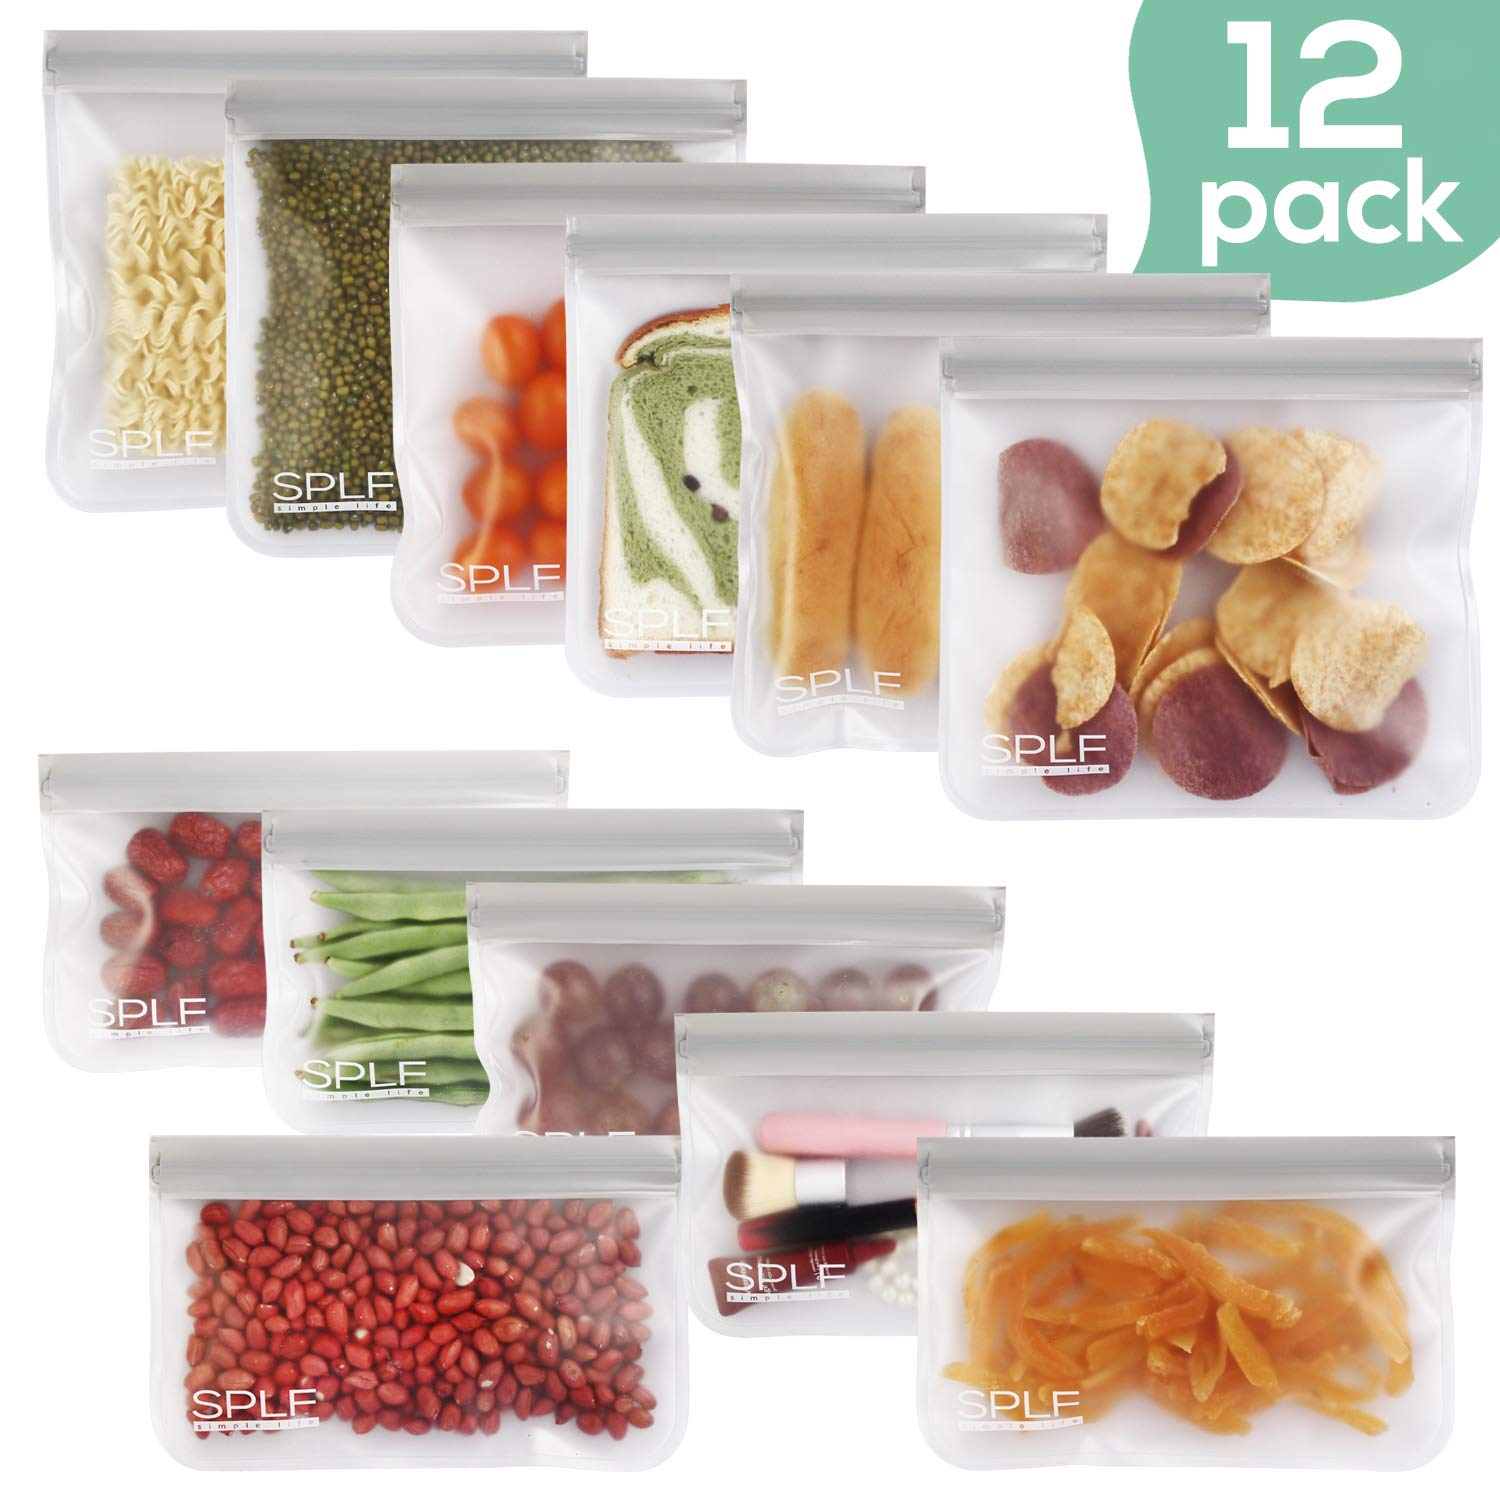 SPLF 12 Pack FDA Grade Reusable Storage Bags (6 Reusable Sandwich Bags, 6 Reusable Snack Bags), Extra Thick Leakproof Easy Seal Ziplock Lunch Bags for Food Storage Home Travel Organization